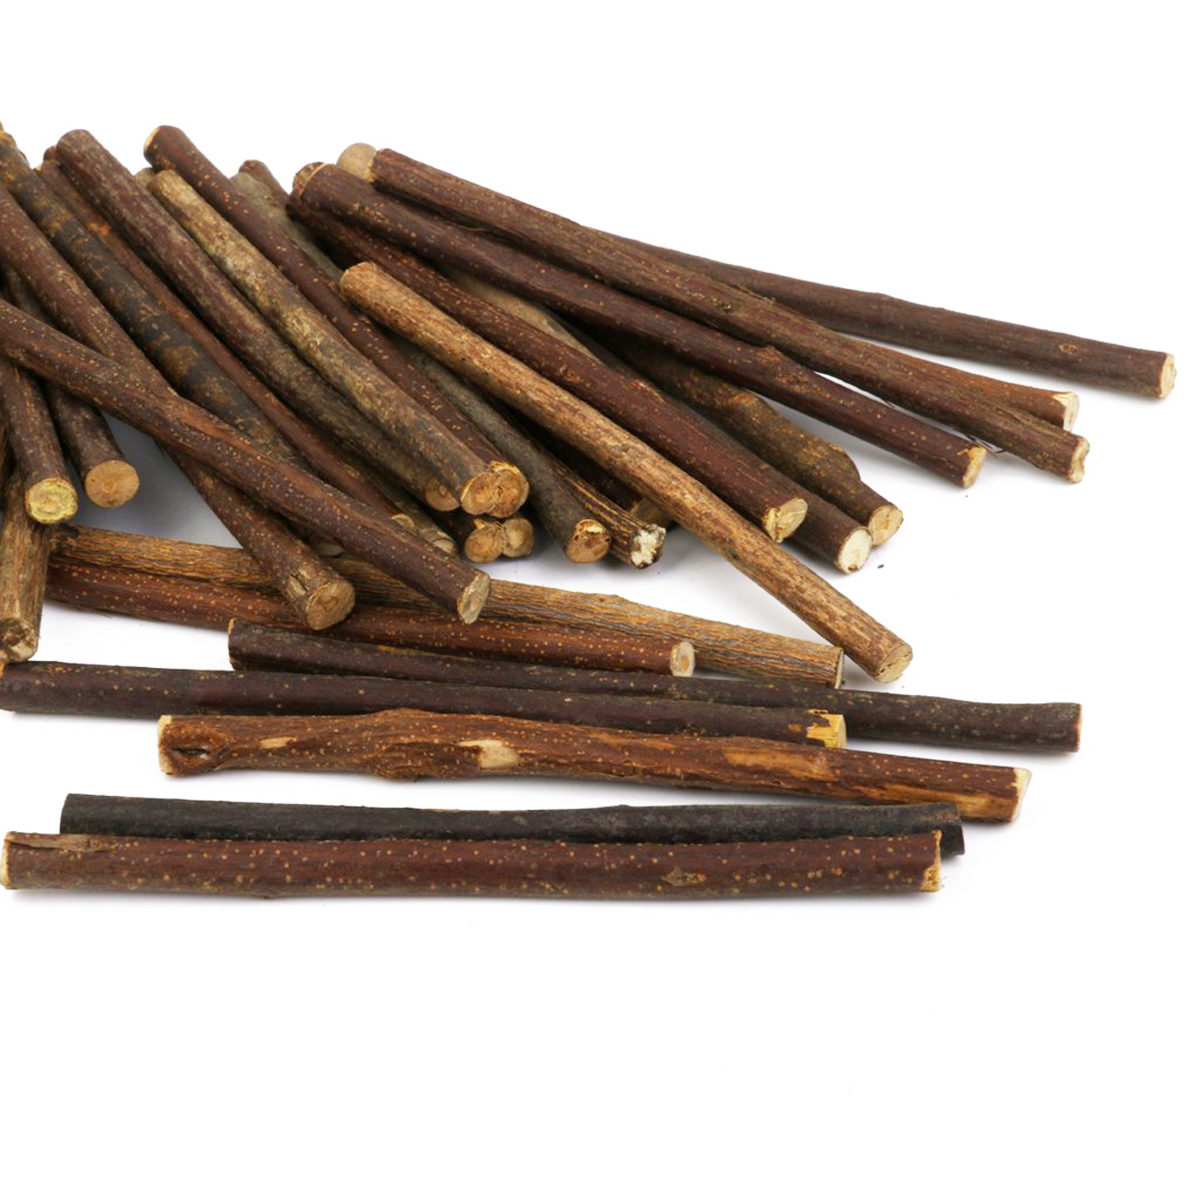 Cinnamon sticks for crafts - 100pcs 10cm Long Wood Log Sticks Diy Photo Props Natural Crafts Supplies Wedding Ornaments Painted Varnished